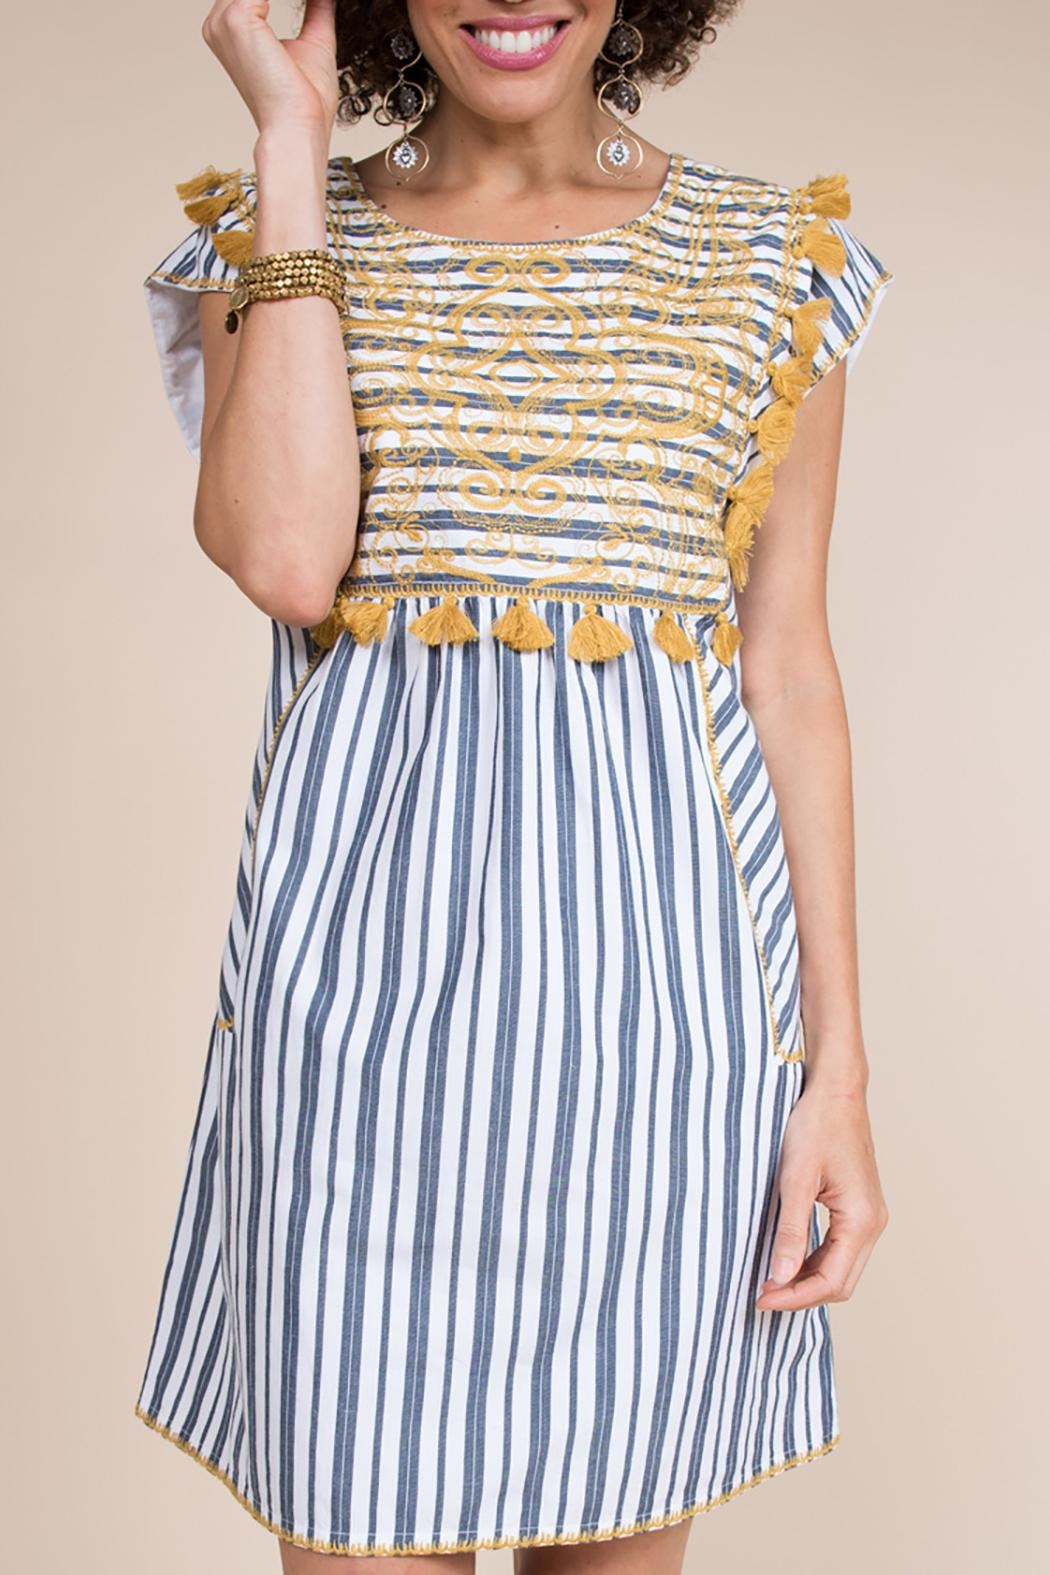 Ivy Jane / Uncle Frank  Striped Embroidery Dress - Main Image